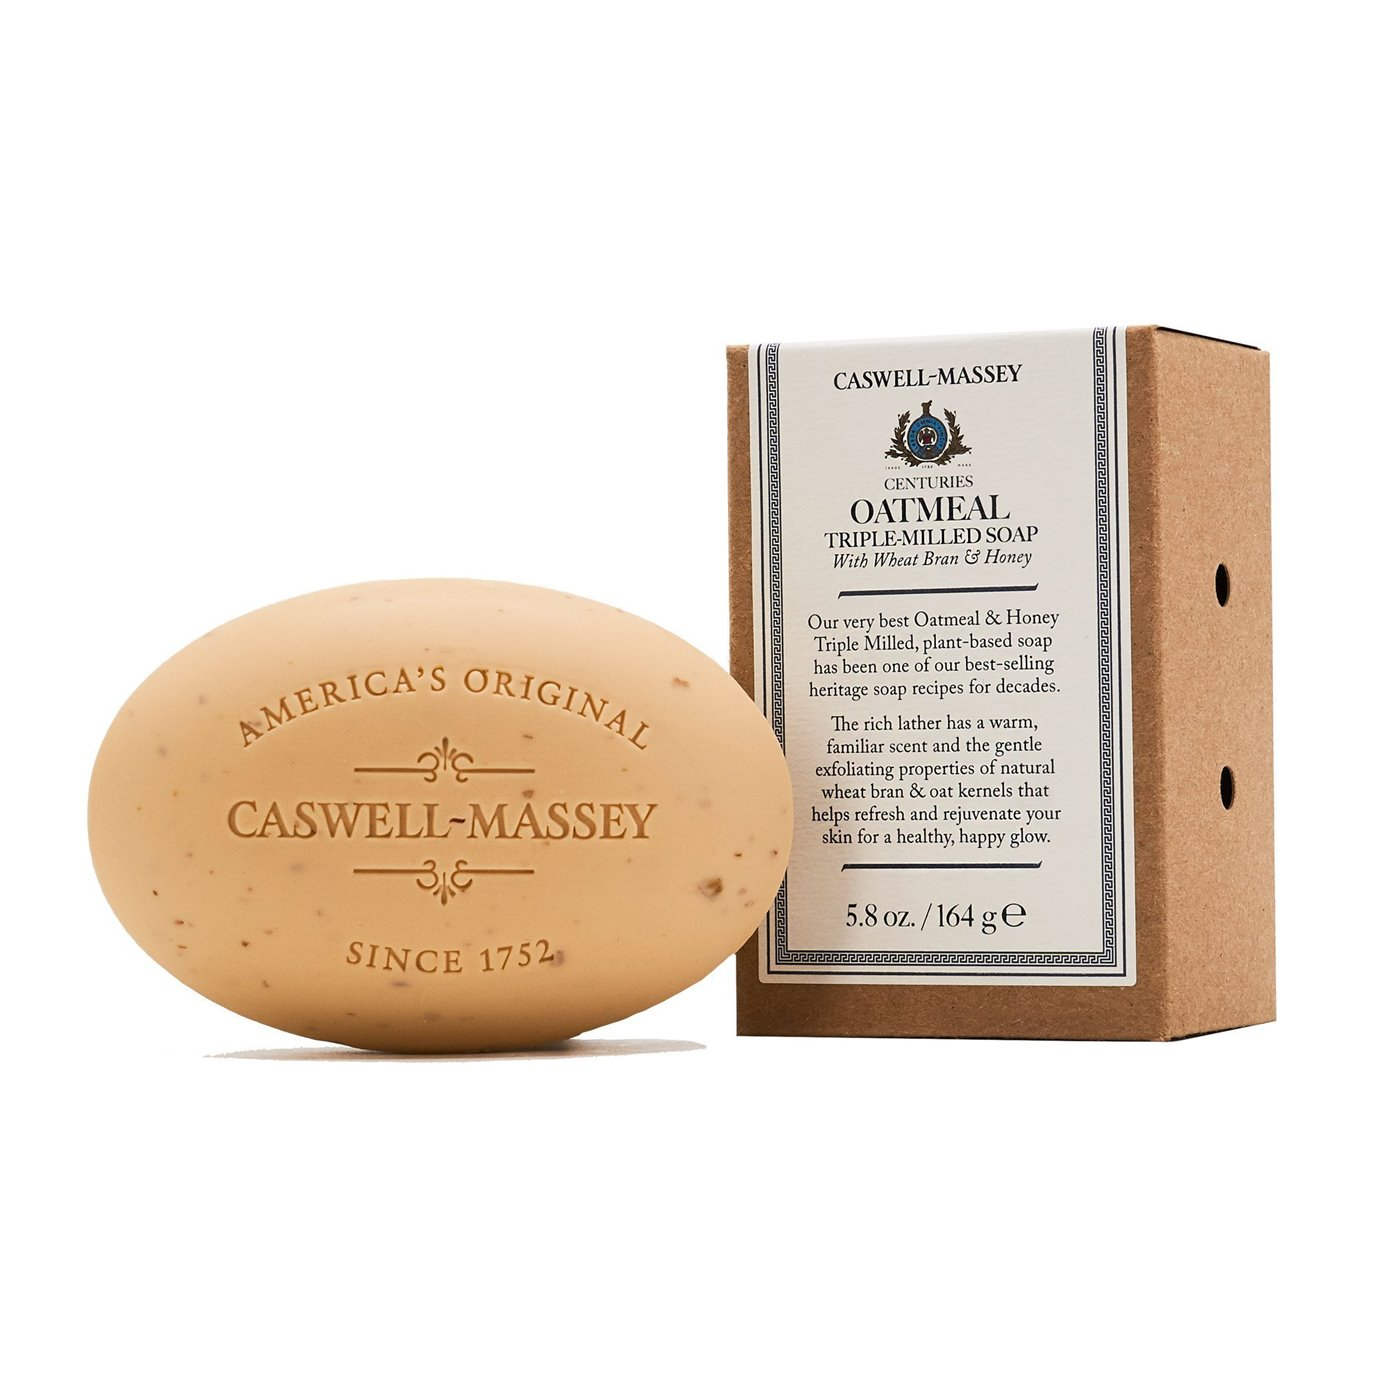 Caswell-Massey Oatmeal and Honey Single Soap (5.8 oz)